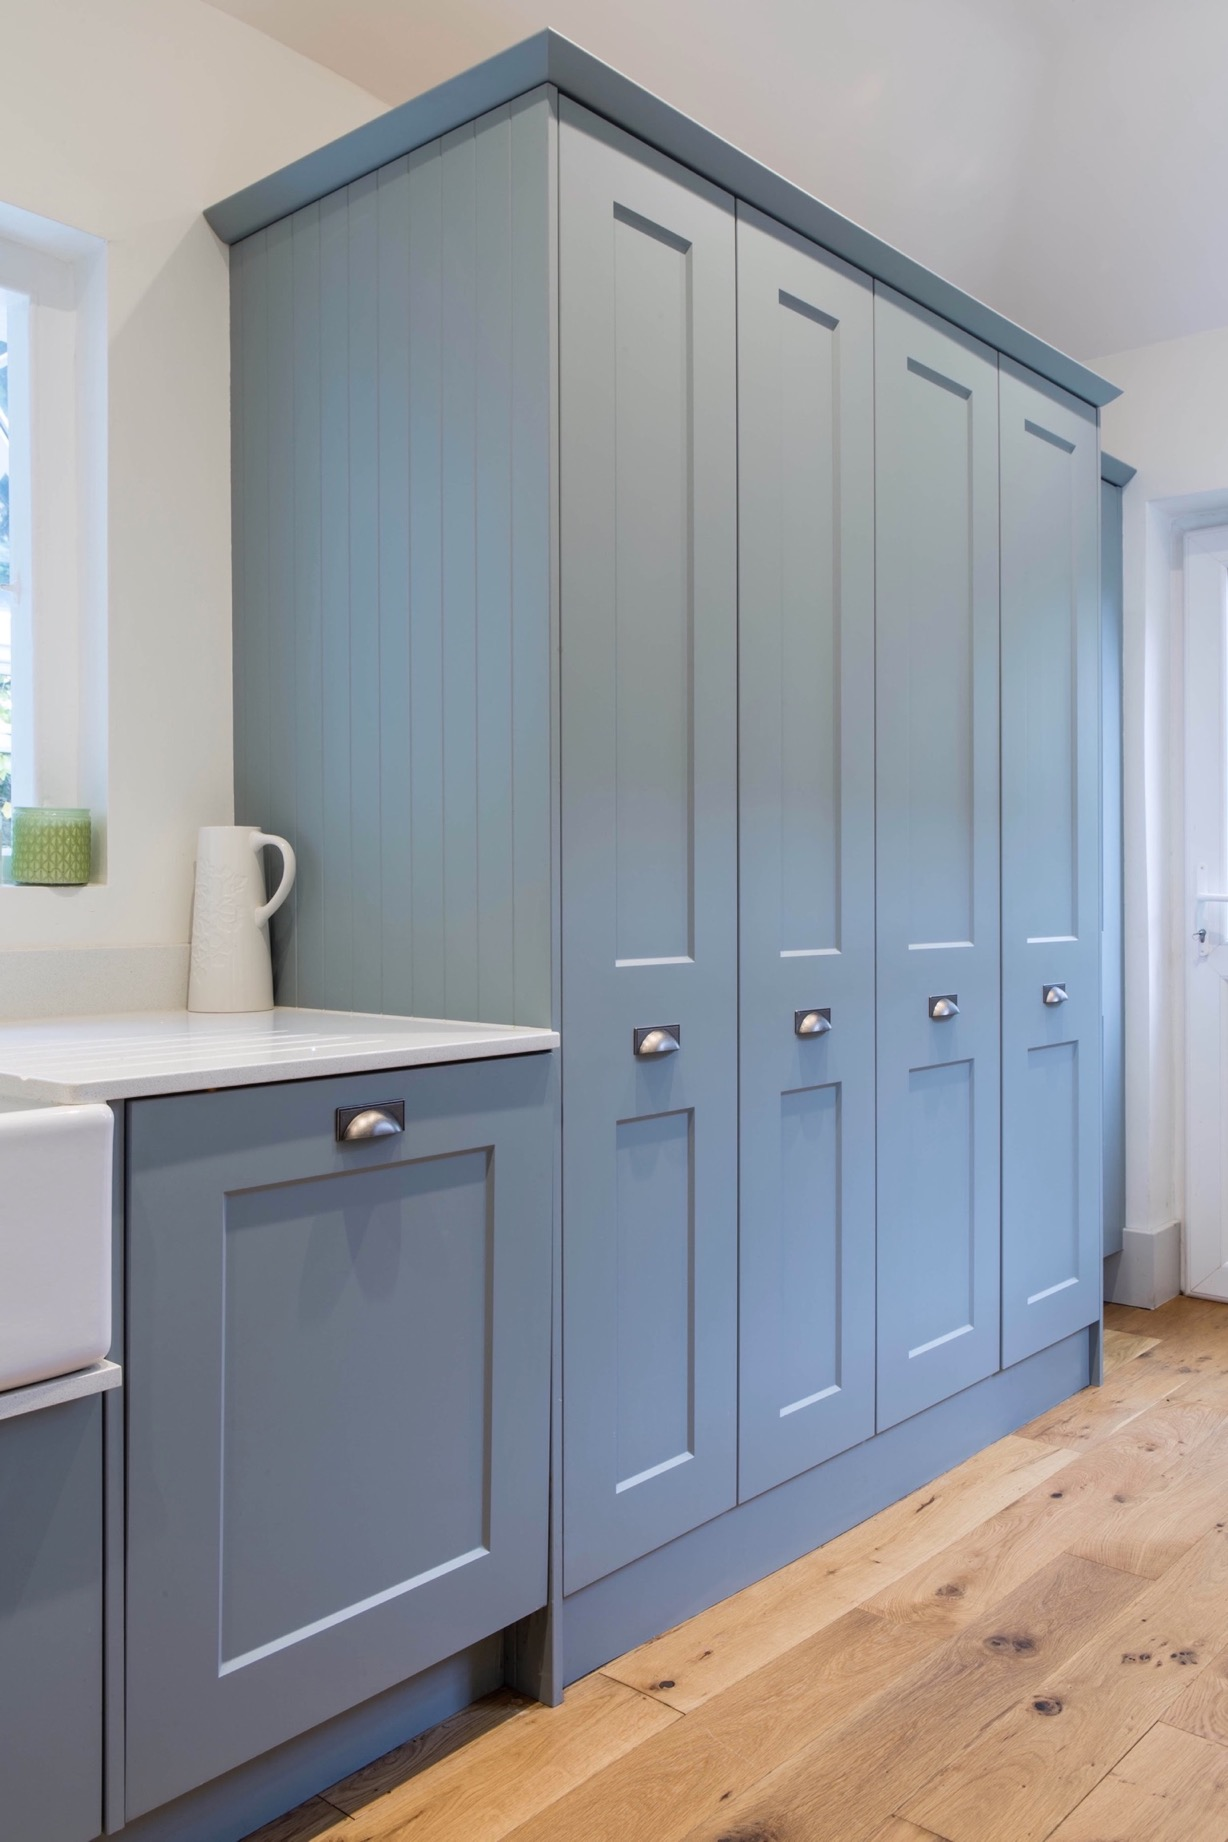 washing machine and clothes dryer in cupboard thame bespoke kitchen design oxfordshire 3